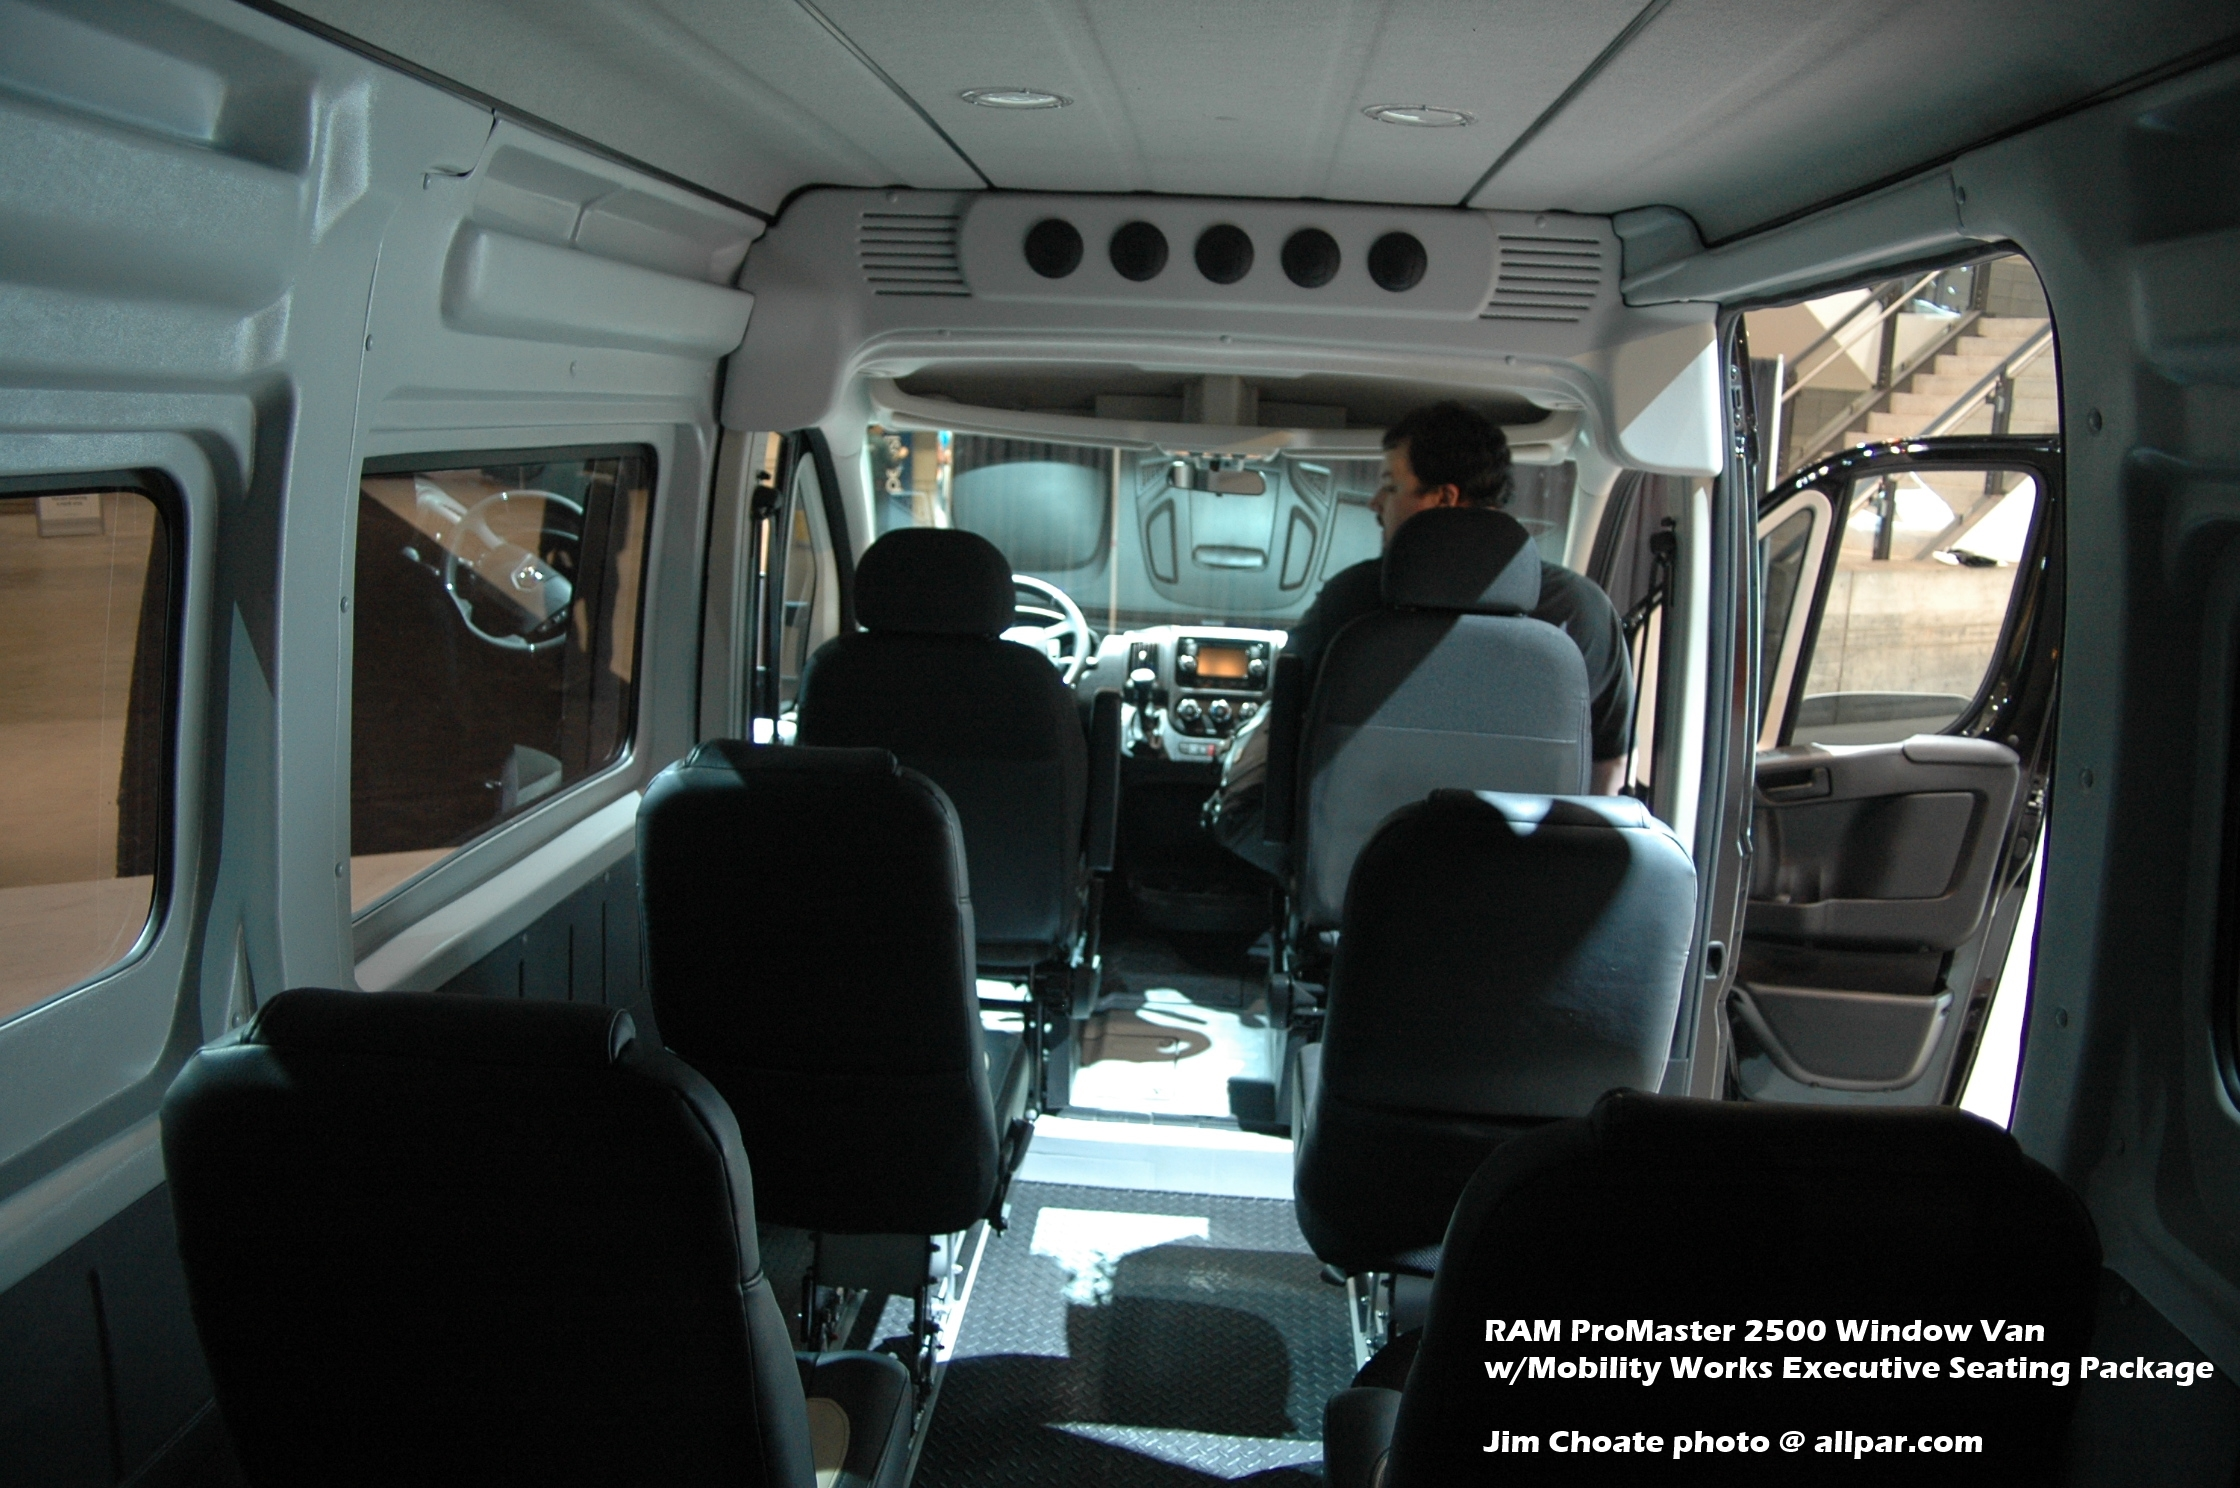 Ram Promaster Window Van #12